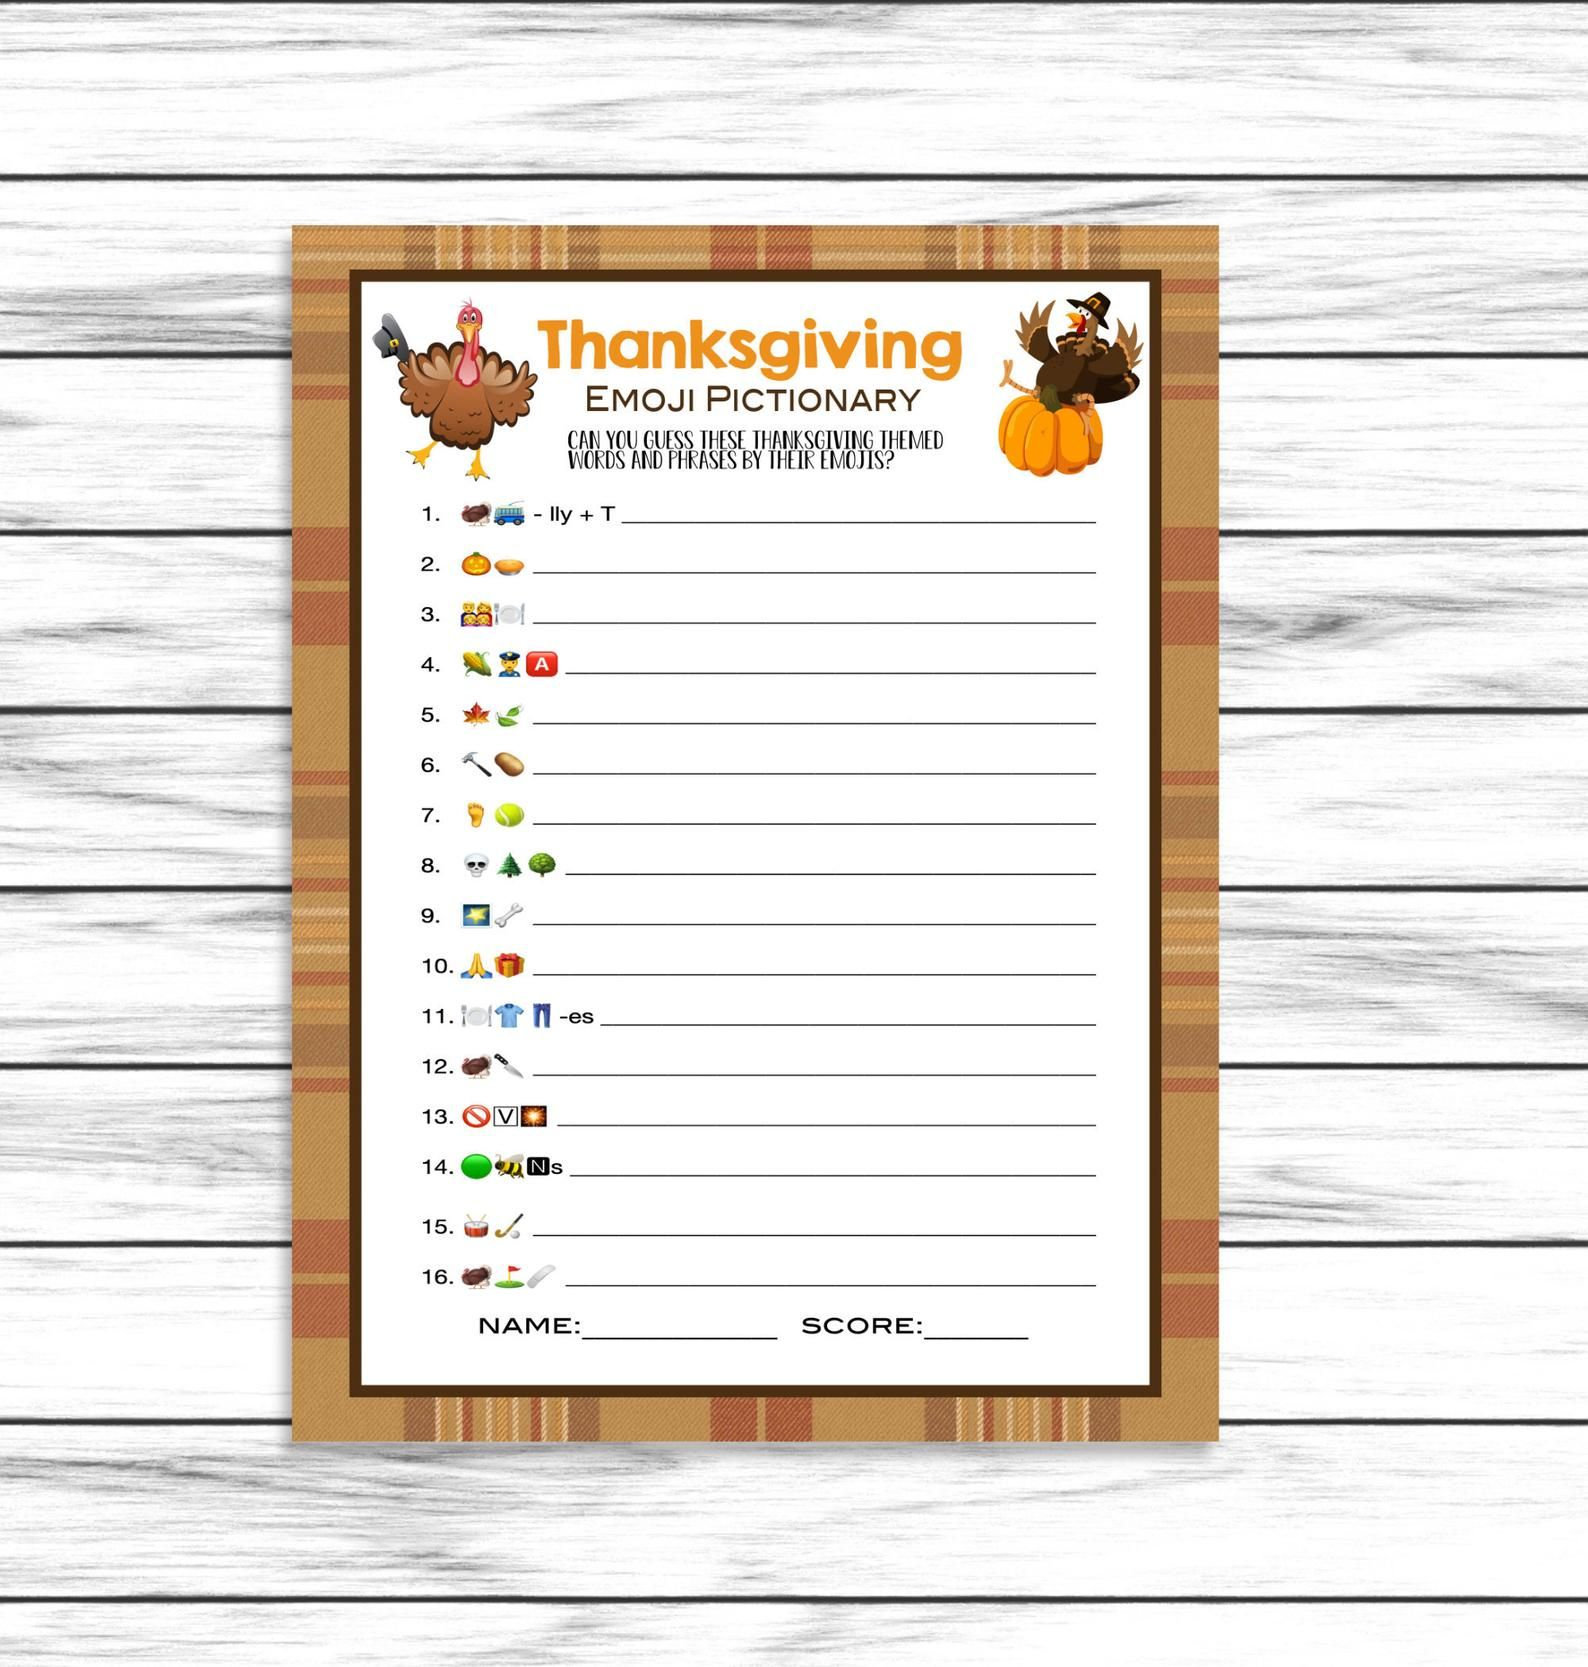 Download Thanksgiving Clip Art Free Clipart Of Pumpkin Pie Thanksgiving Clip Art Clip Art Free Clip Art